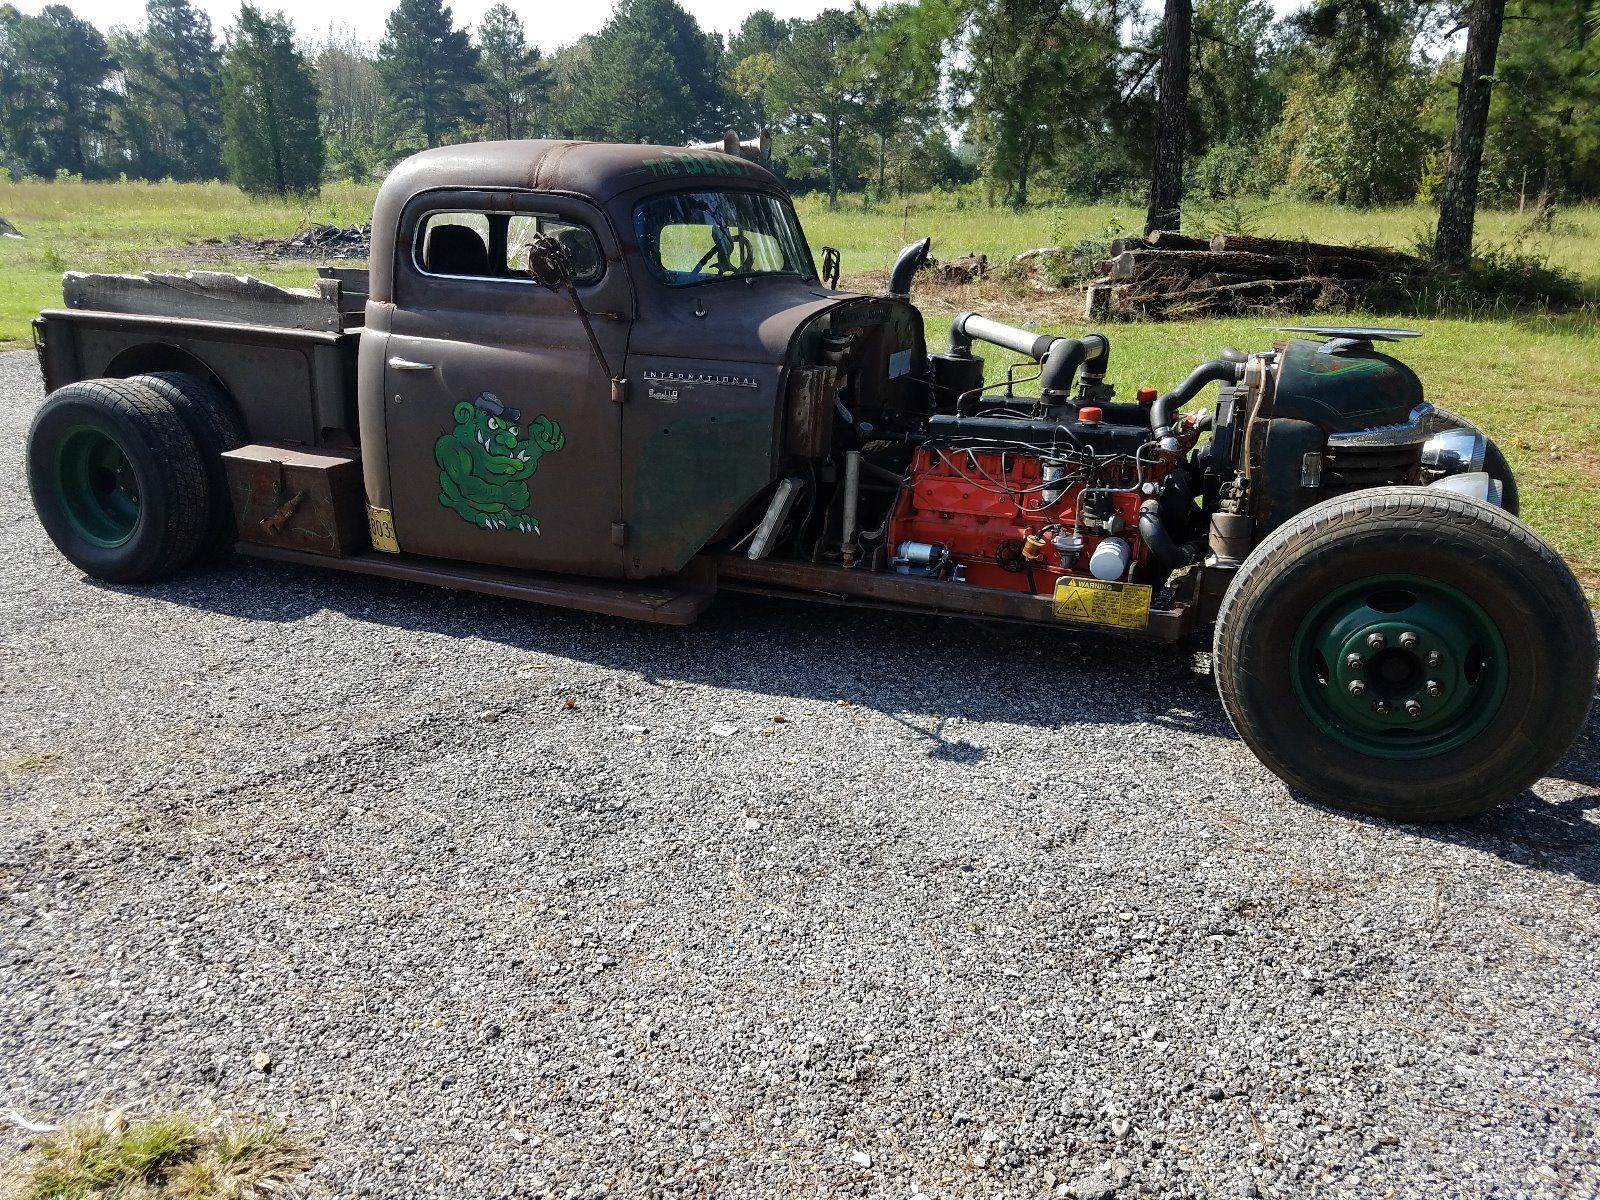 hight resolution of 53 international ratrod truck with two 230 6 cylinders turbo 350 transmission belt driven all tube chassis chevy dually rear end with 4 88 gears chain